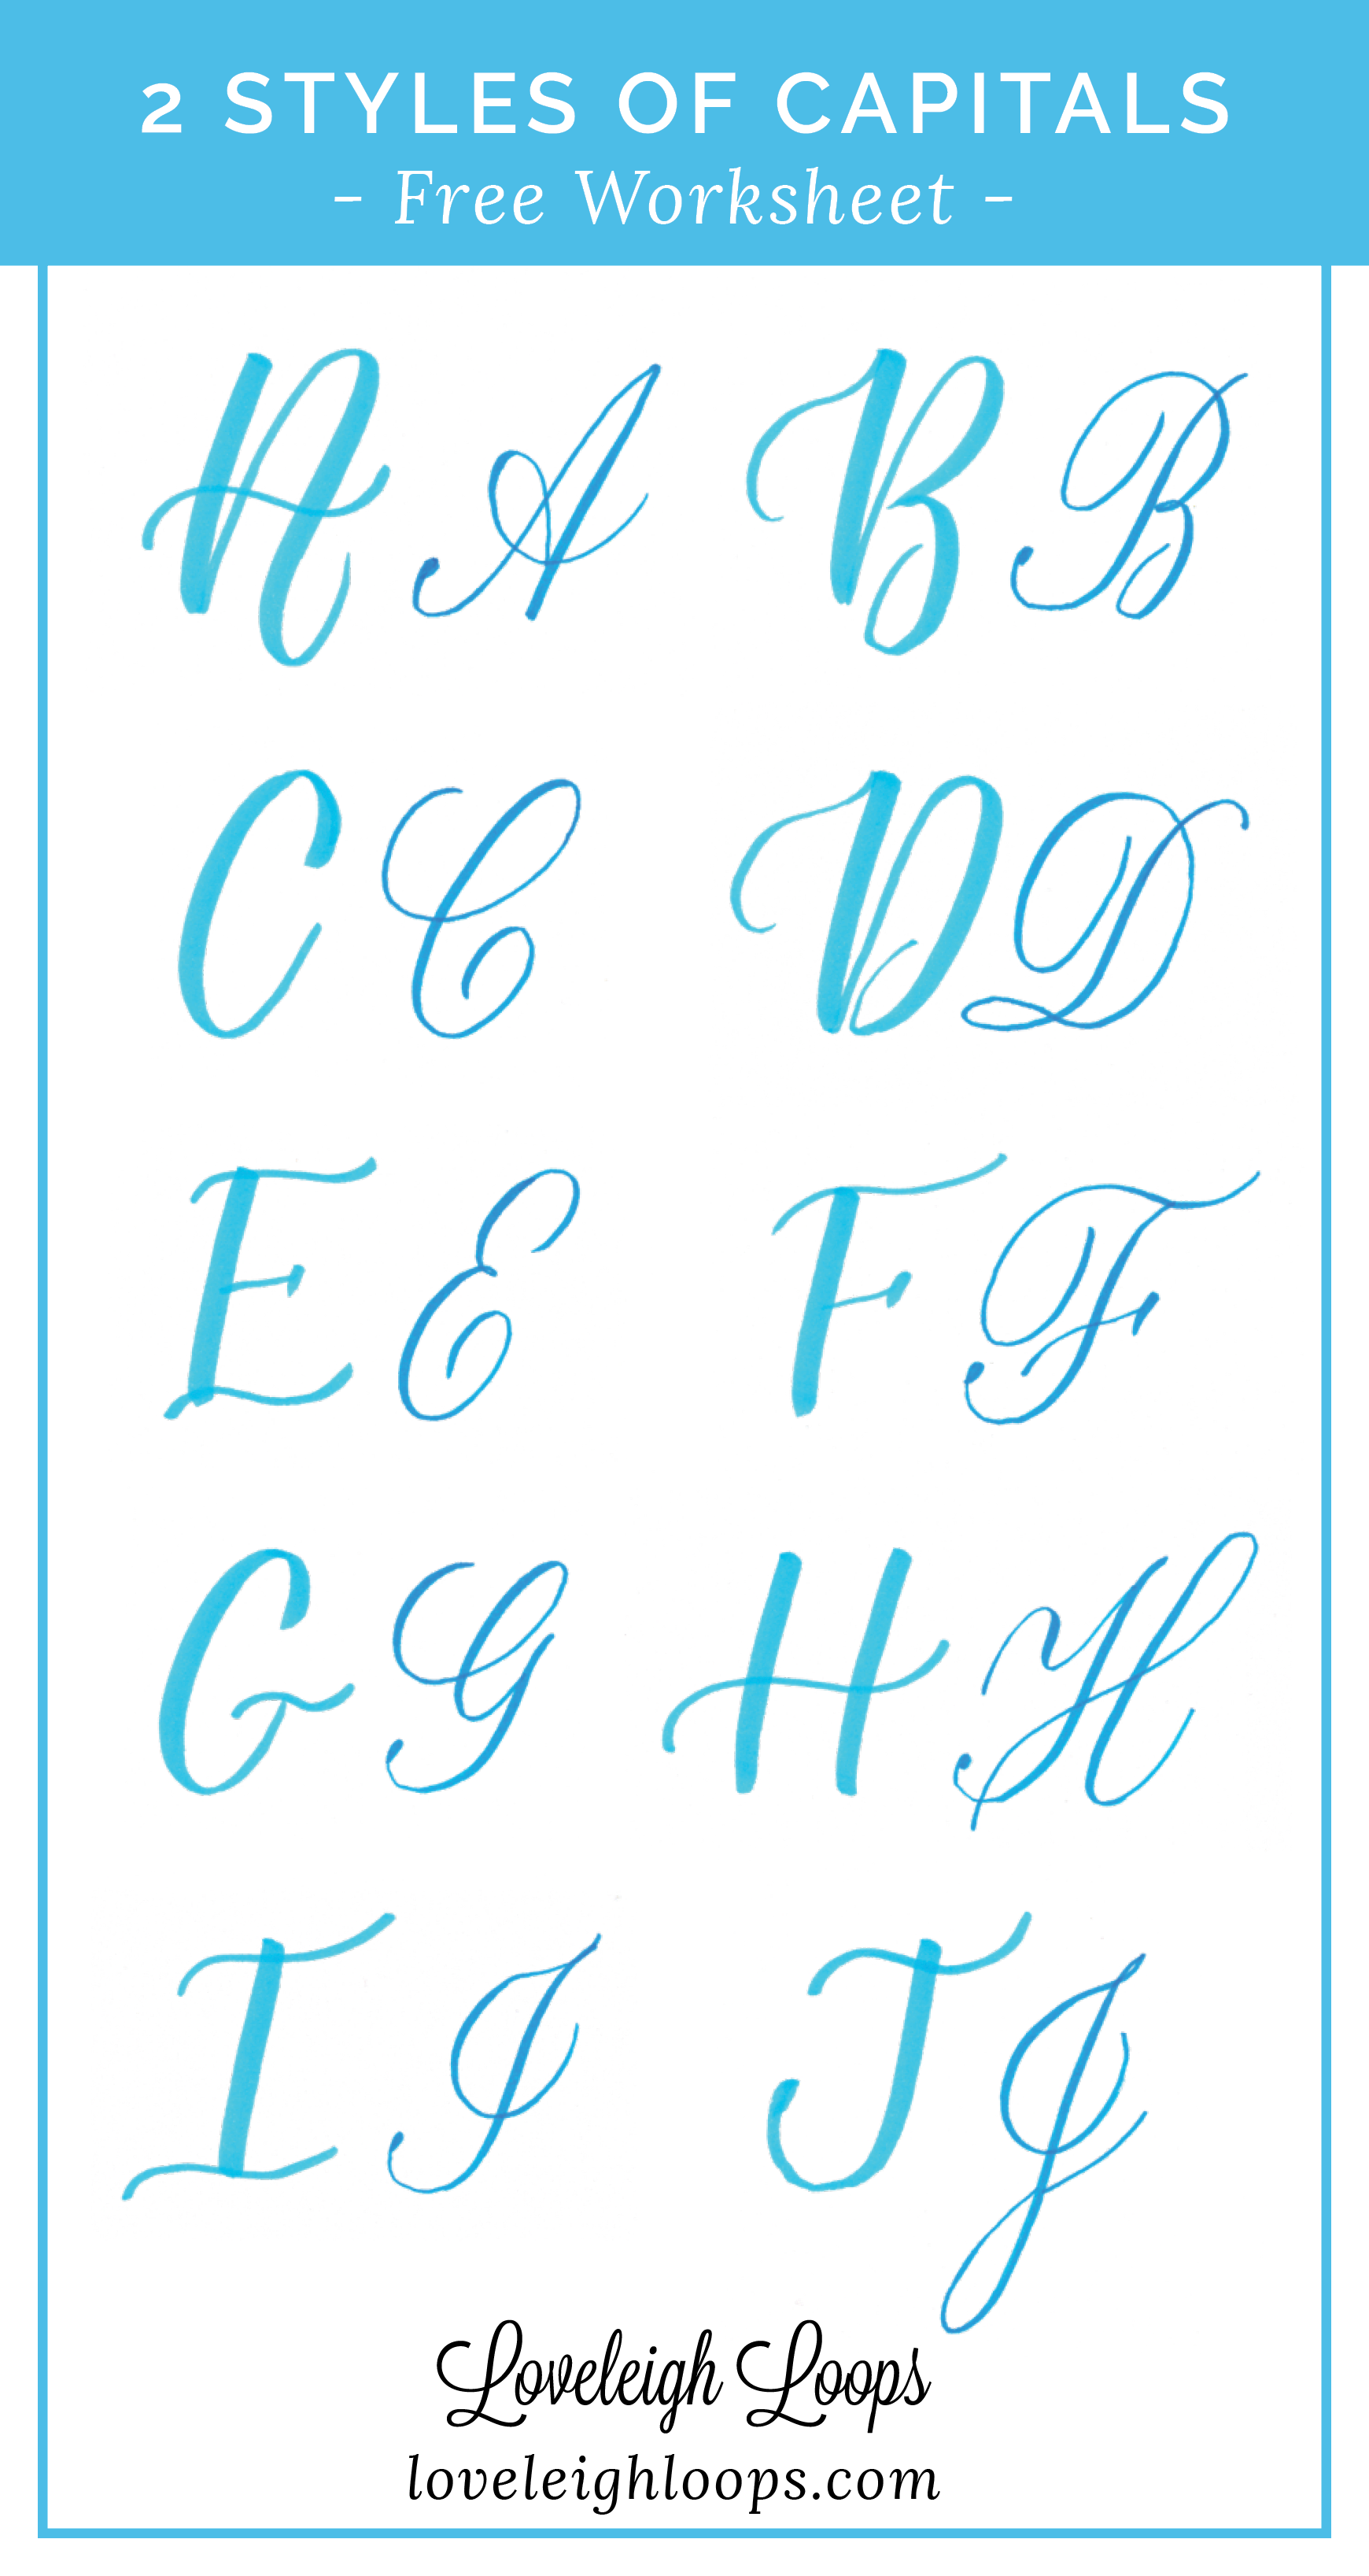 Learn 2 Styles Of Capital Letters In Brush Lettering